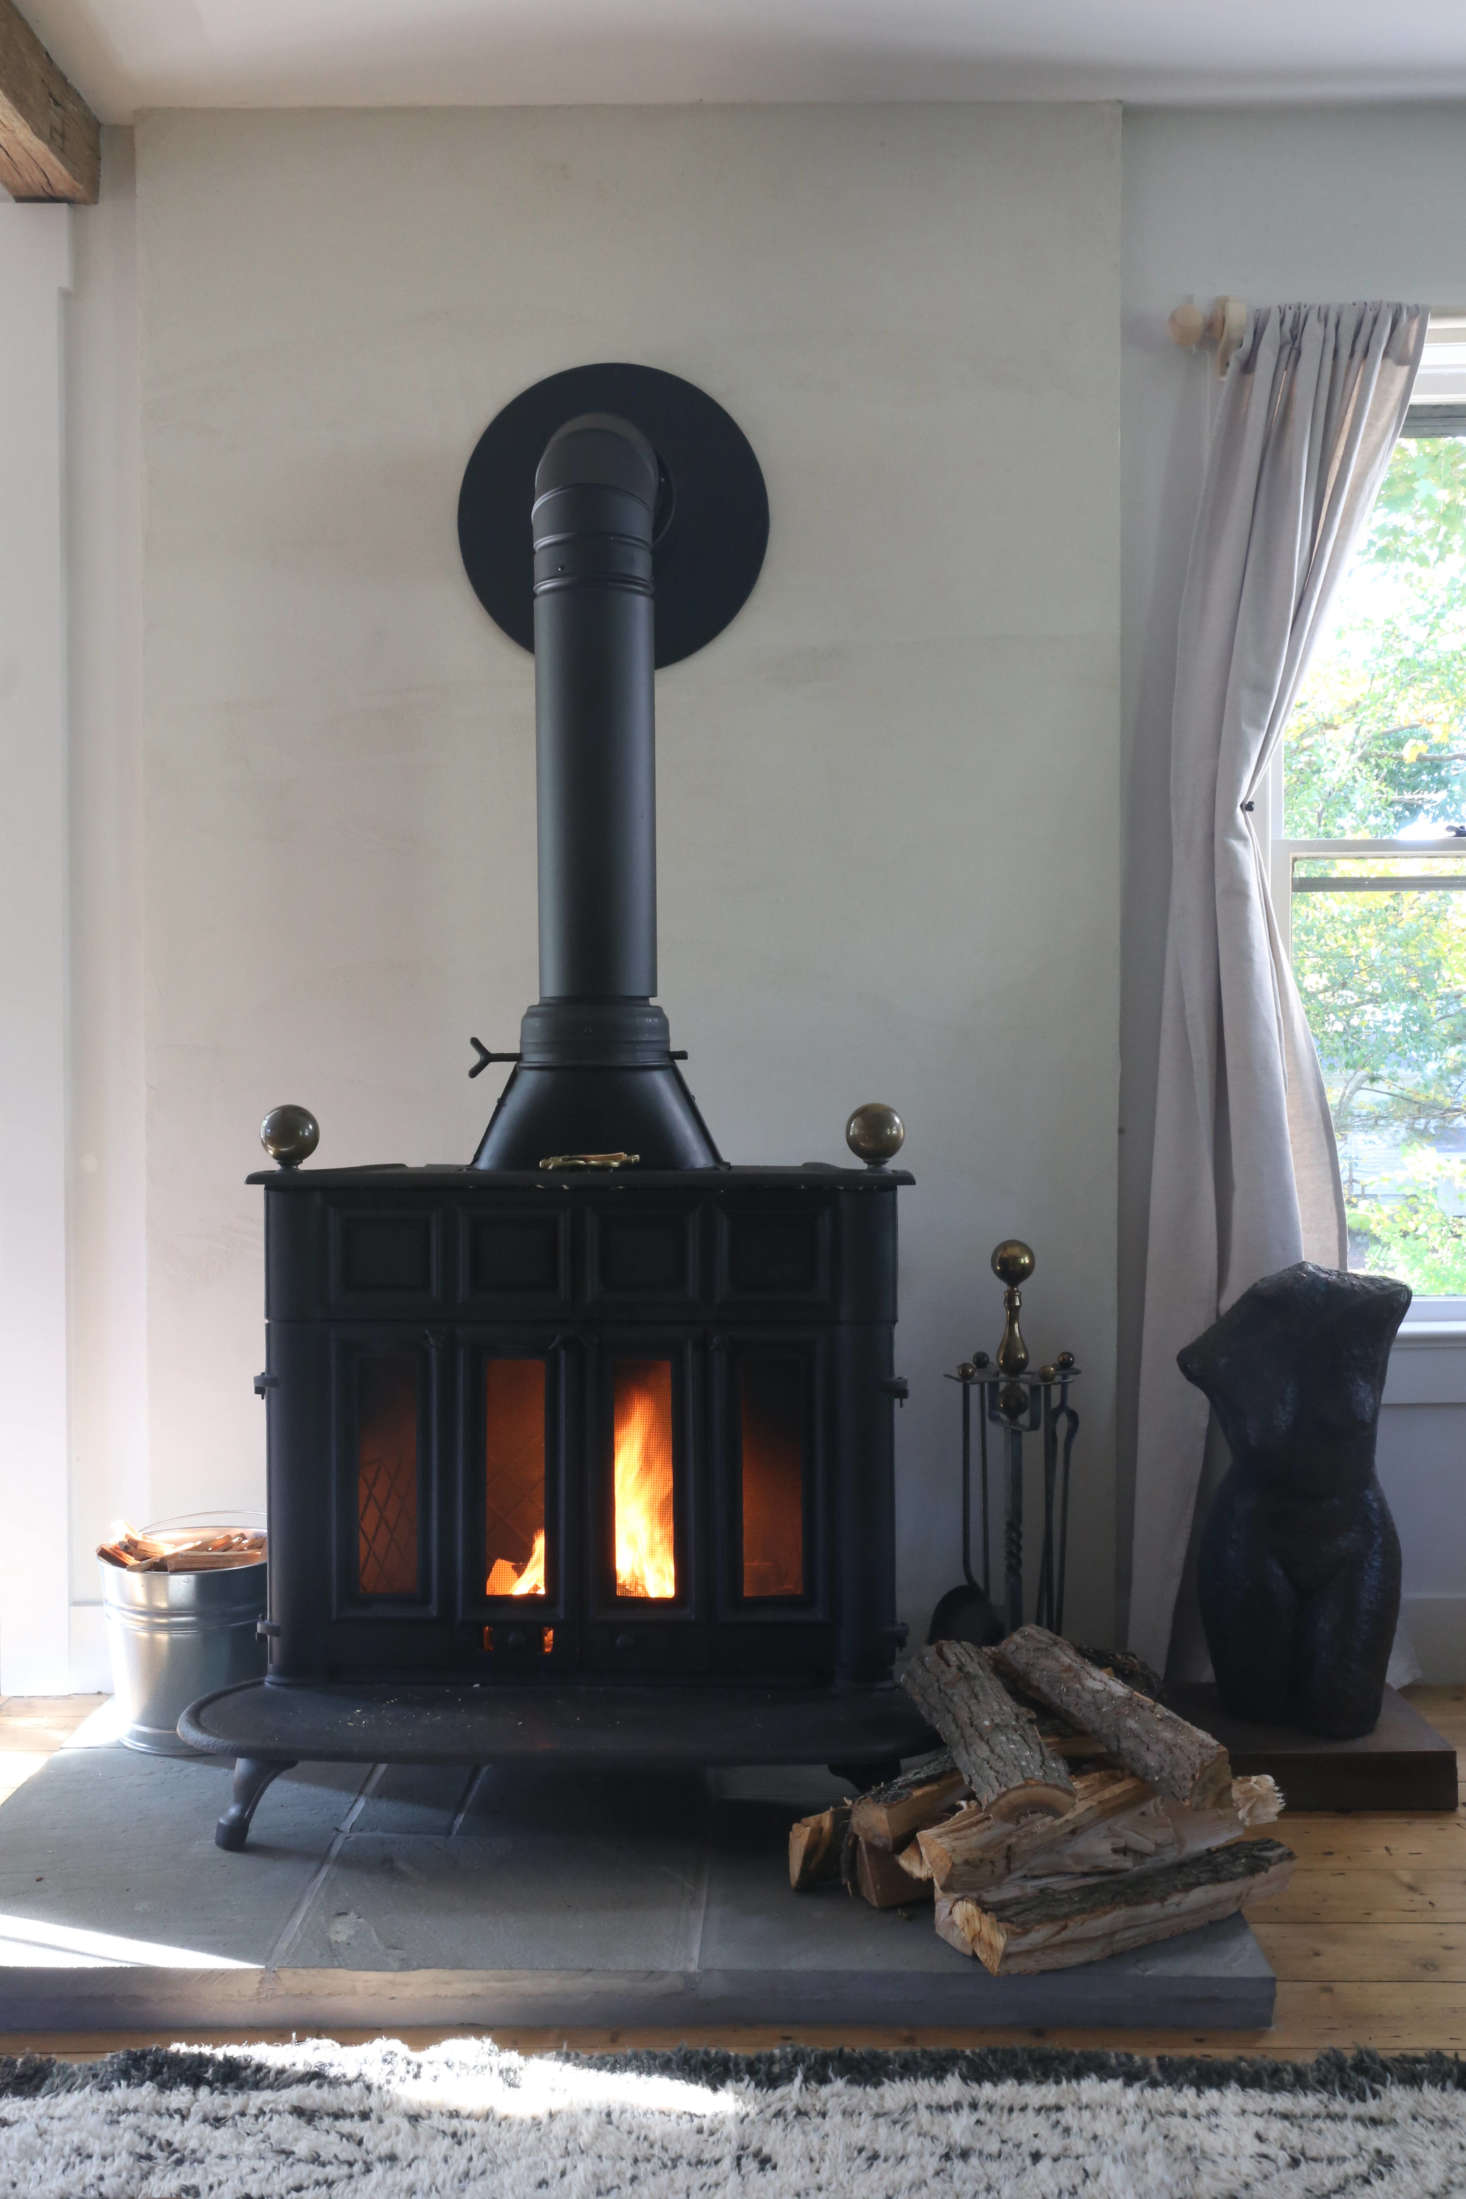 The vintage Franklin stove came from Hoffman&#8